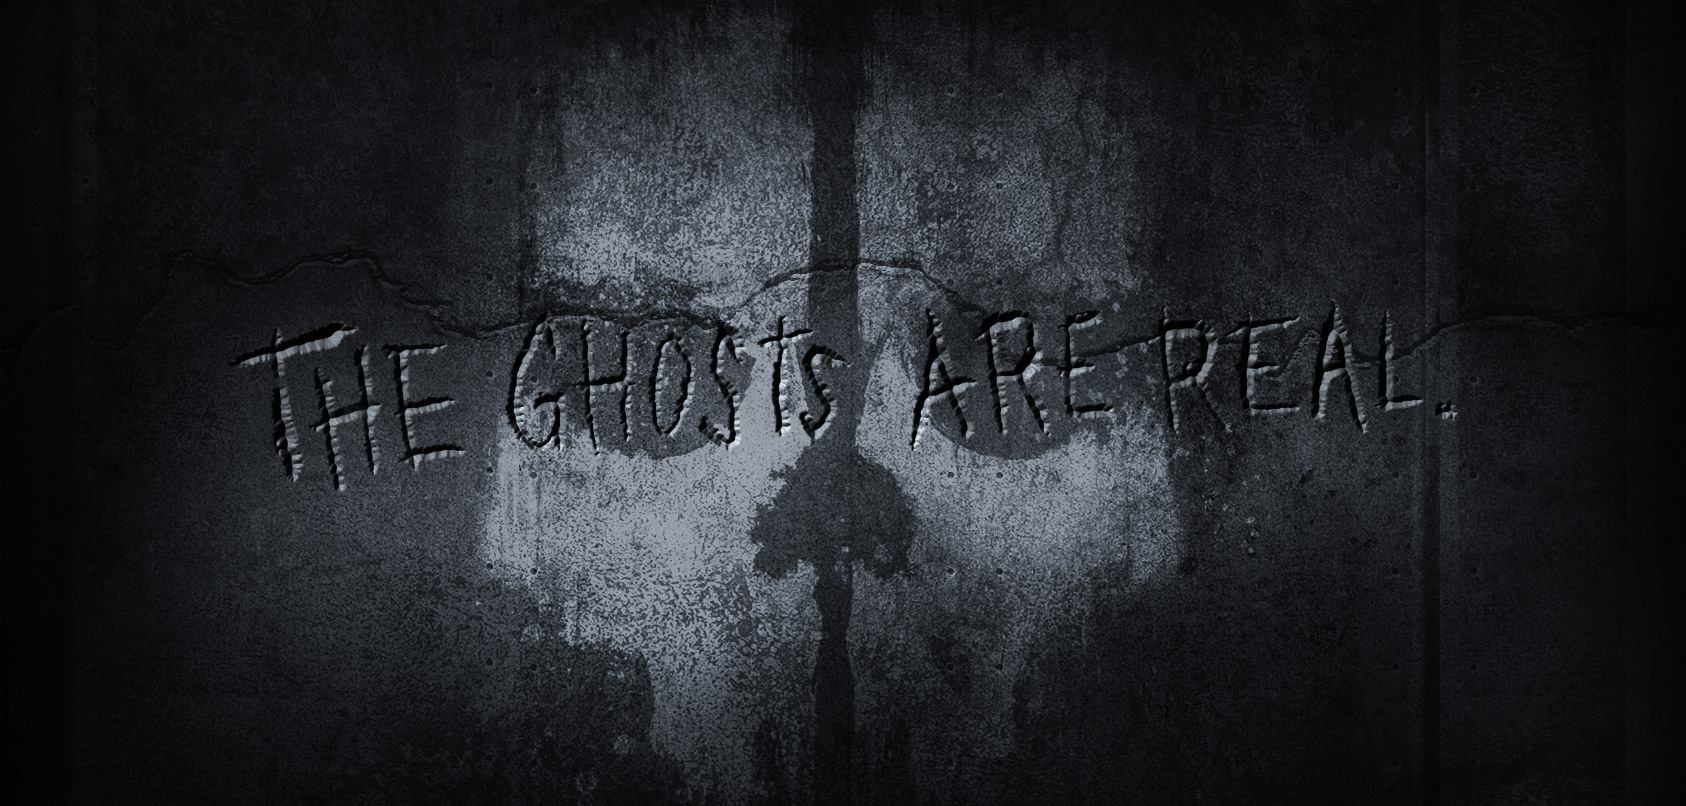 Call Of Duty Ghosts Wallpaper And Background Image 1686x806